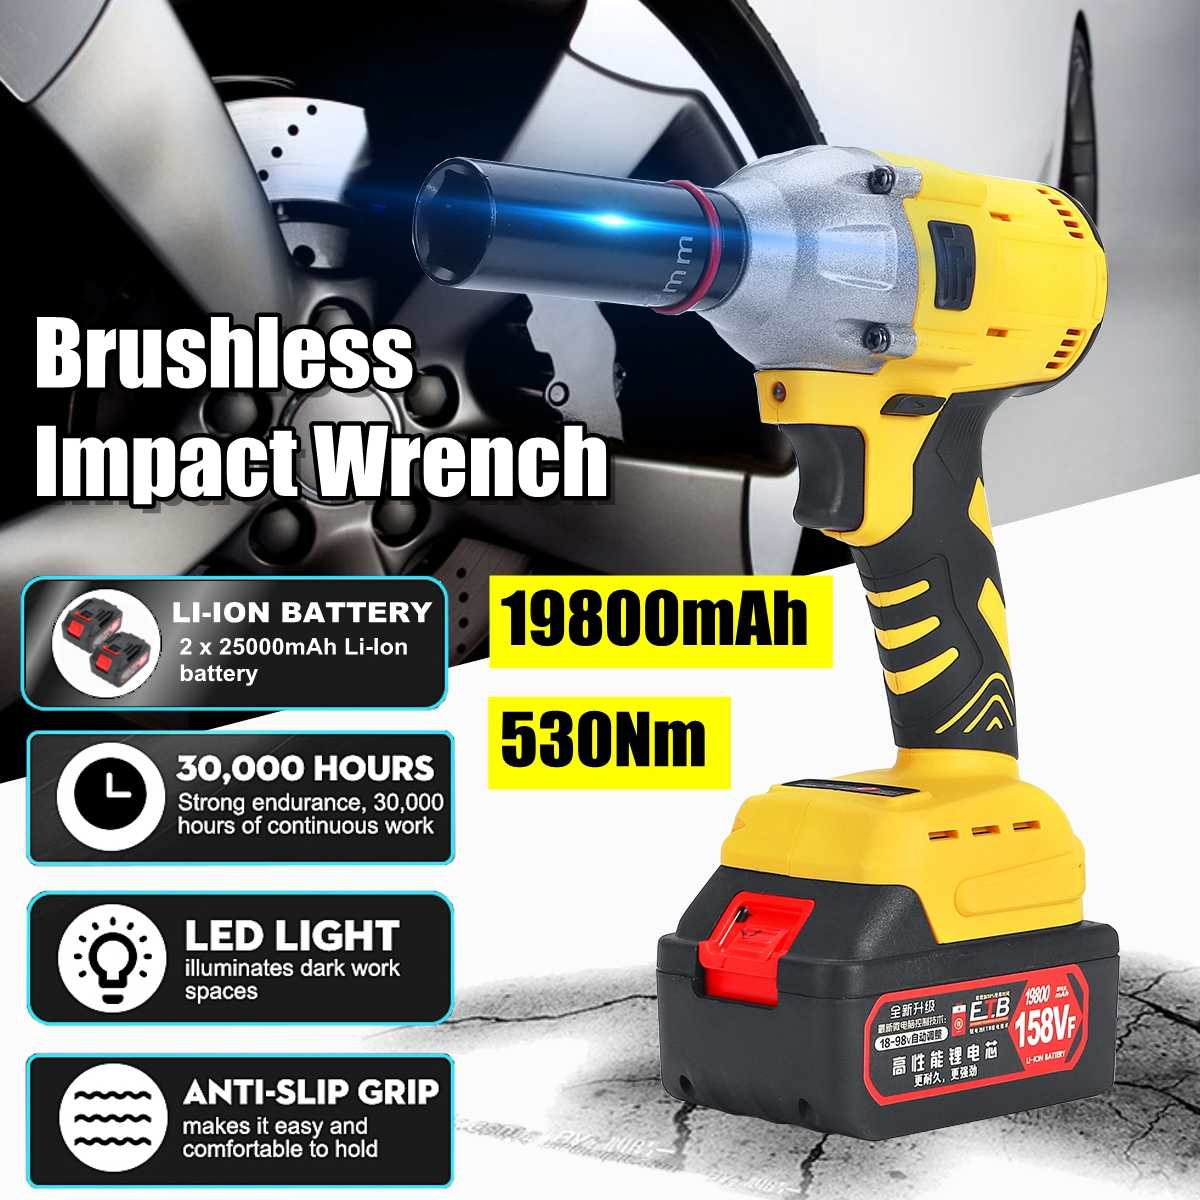 158VF 530Nm 19800mah 1/2'' Cordless Impact Wrench Power Driver Electric Wrench Socket 2 X Battery 1/2